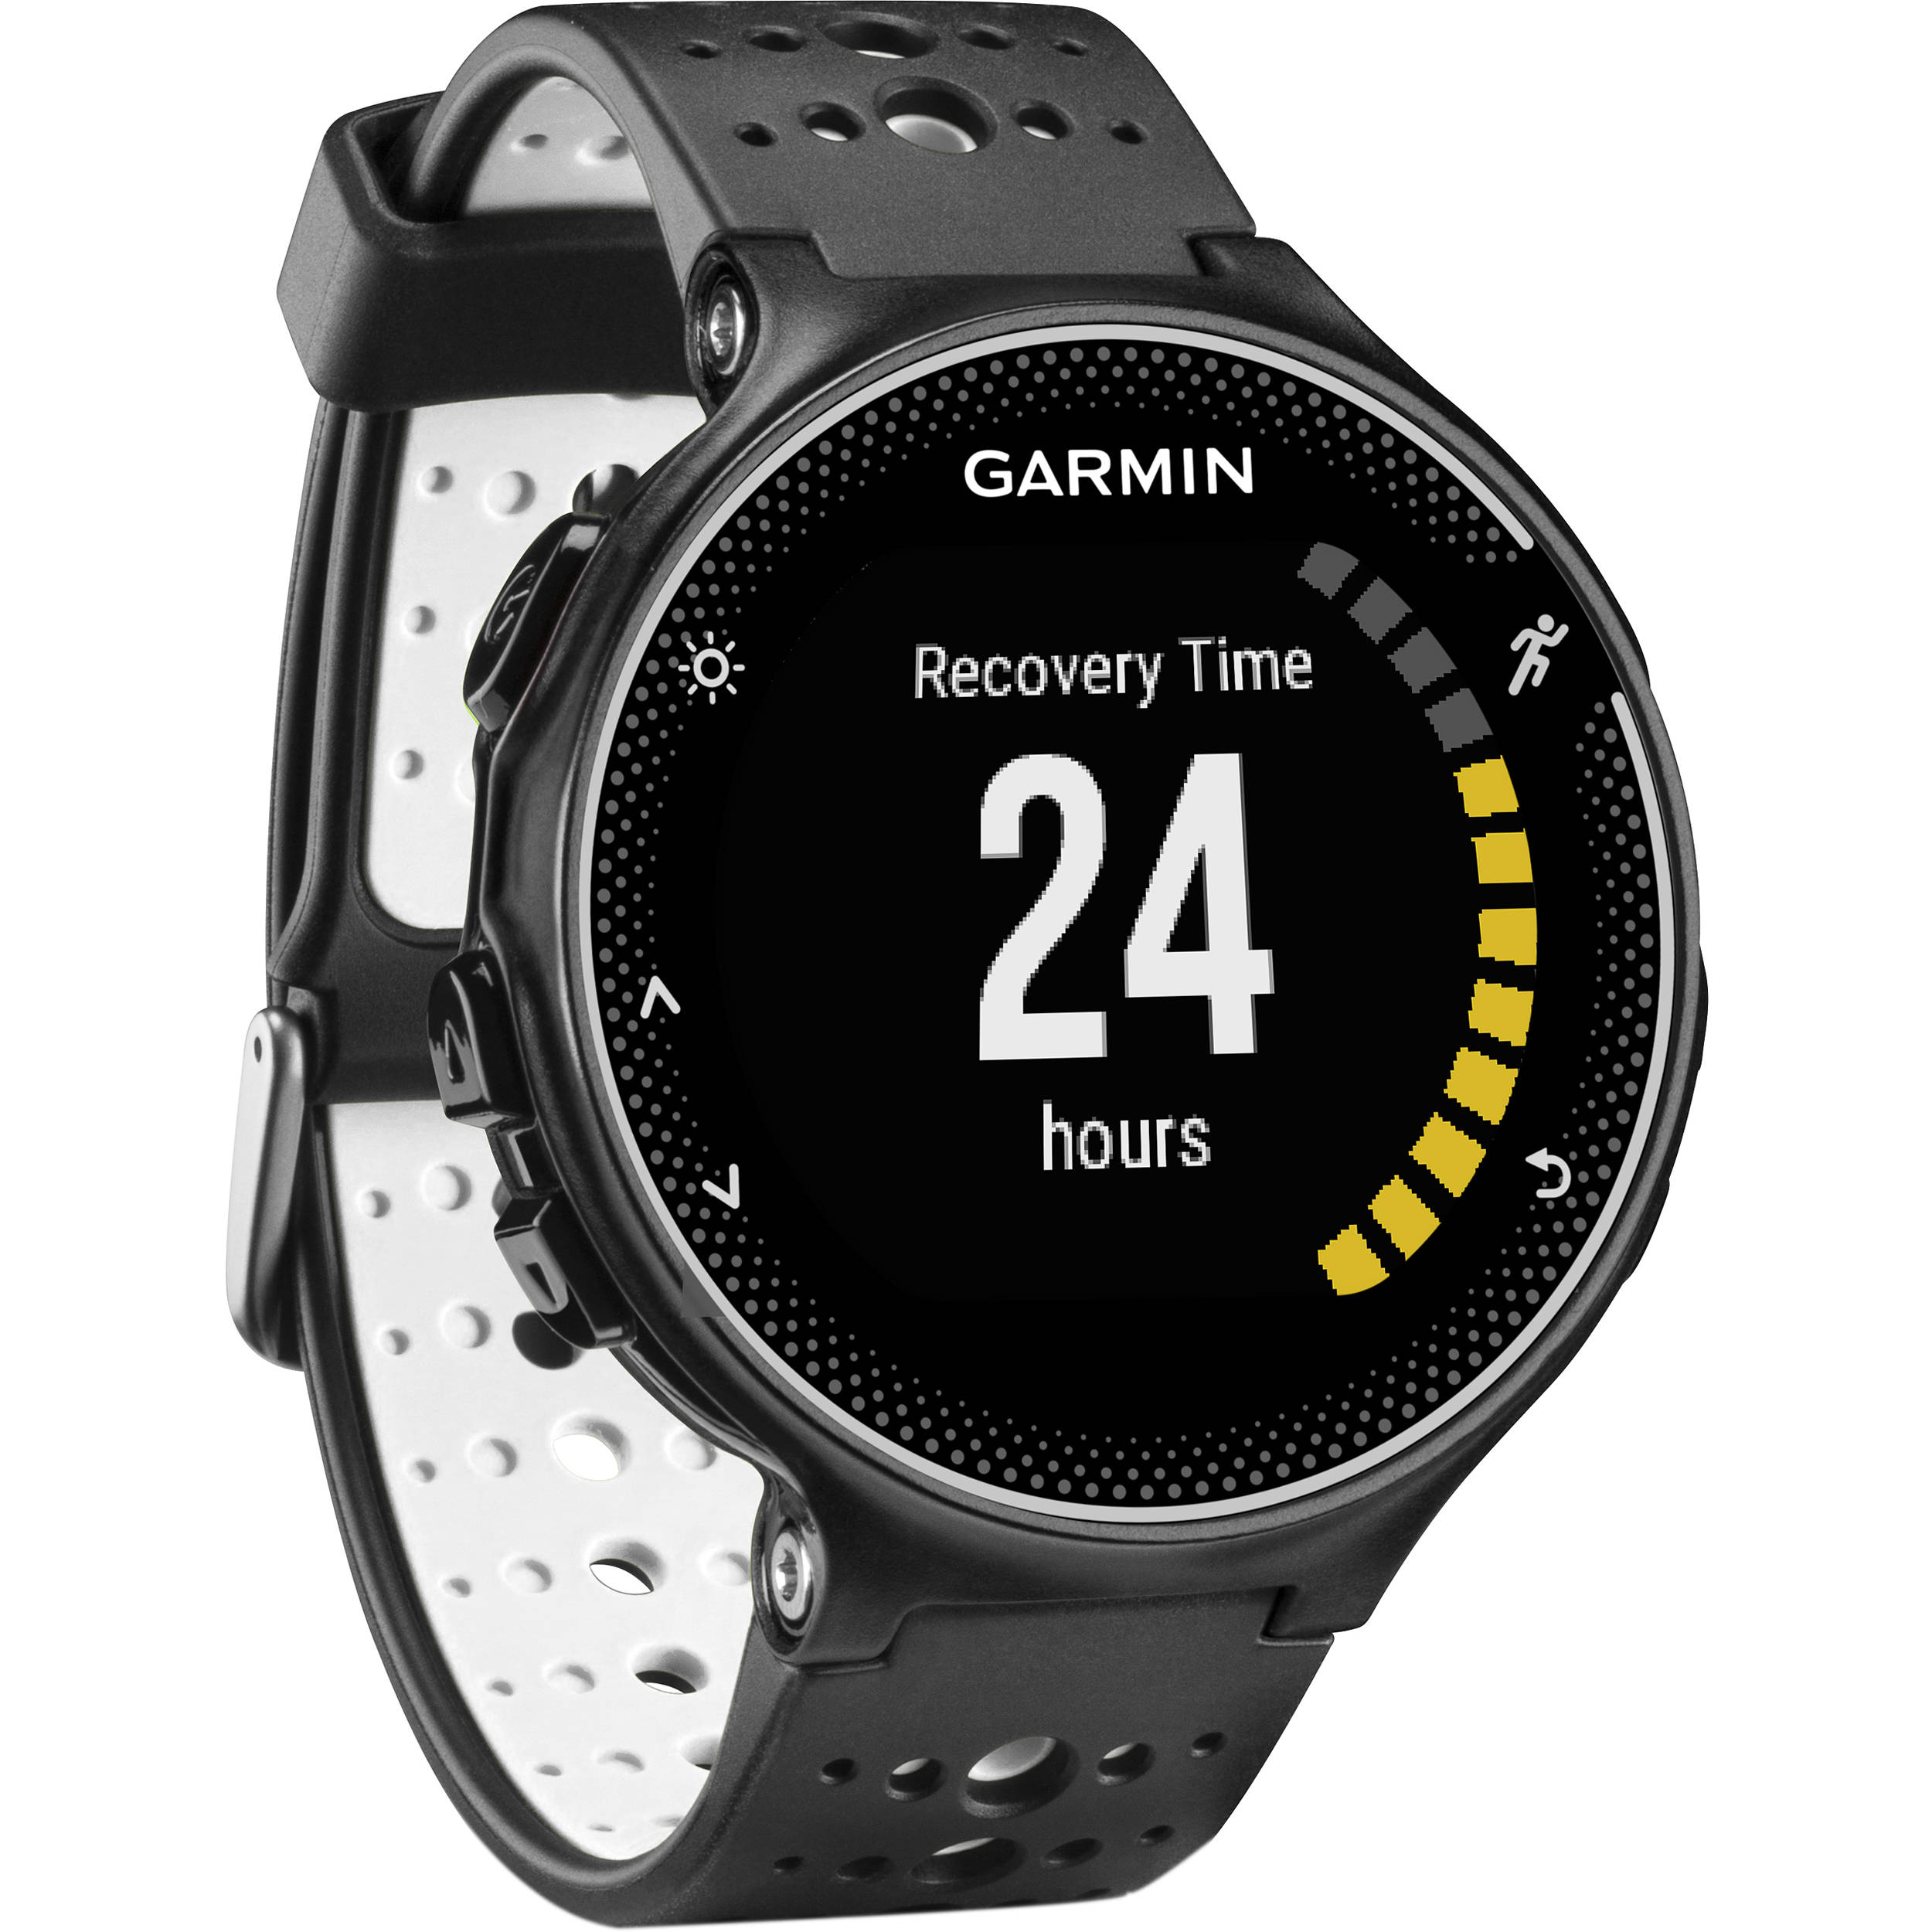 accessories gps dp garmin ca amazon running watch white cell phones forerunner black watches